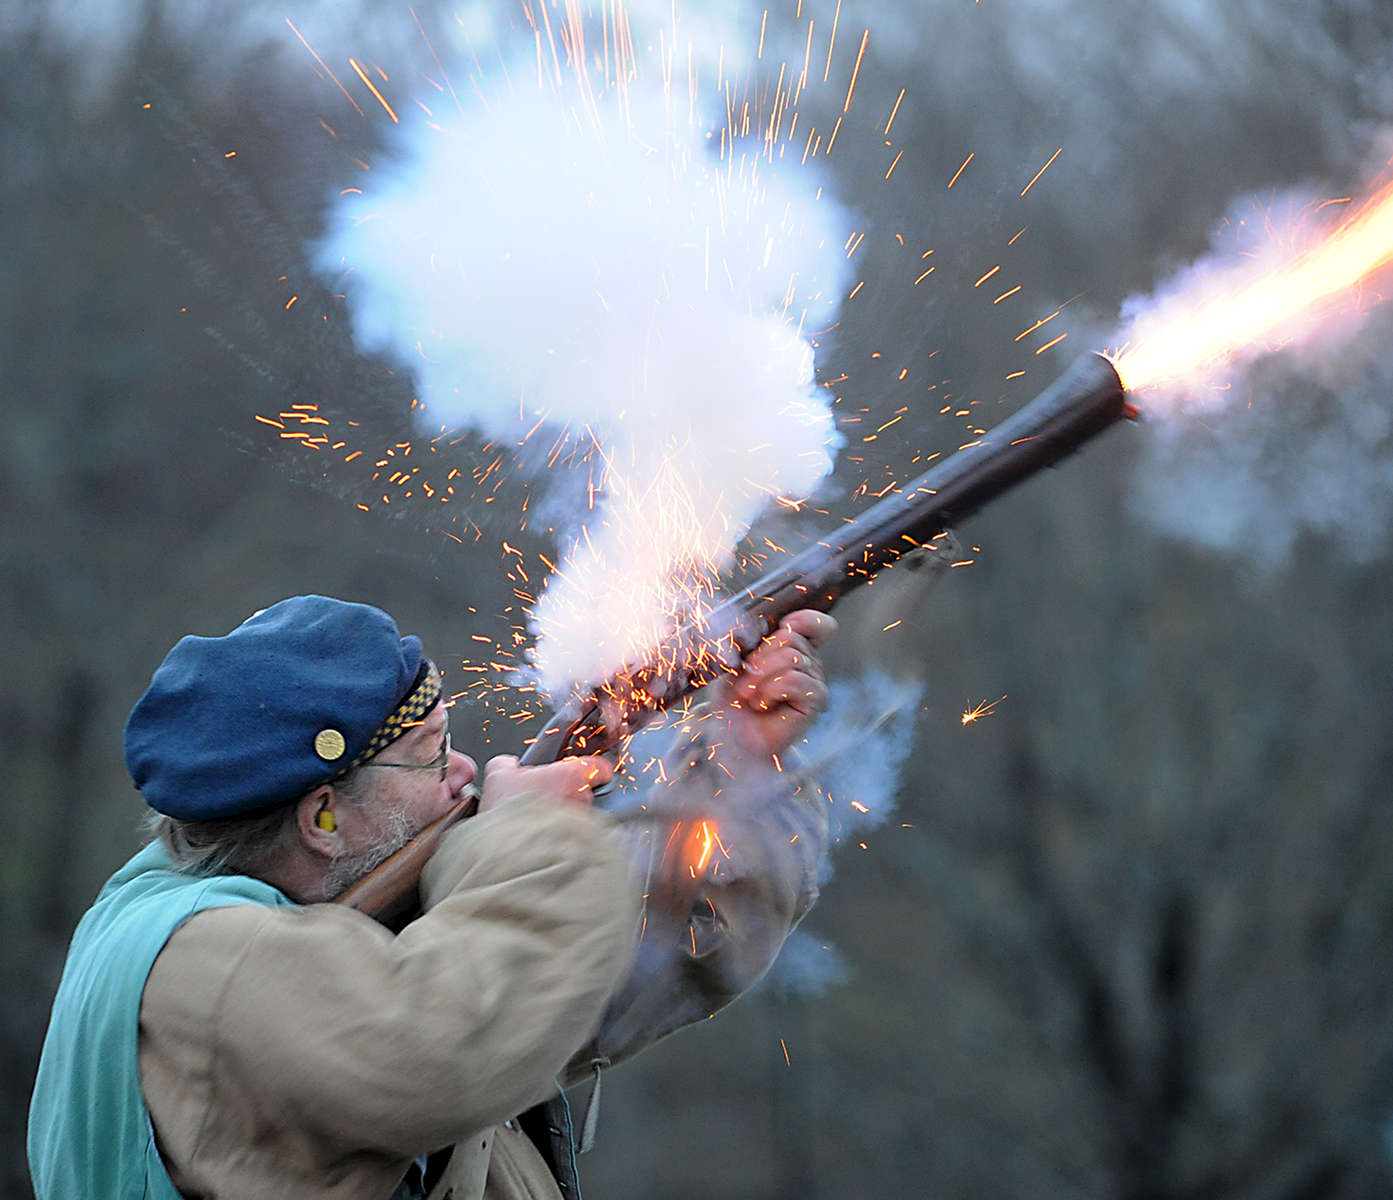 4/19/17-- SUDBURY-- Eric Vollheim, who joined the Sudbury Companies of Militia and Minute in the 1960s as a Boy Scout, fires his musket in front of Sudbury Town Hall, on Patriots' Day, April 19, 2017, the 242nd anniversary of the Battles of Lexington and Concord and the start of the American Revolution. [Daily News and Wicked Local Staff Photo/Art Illman]